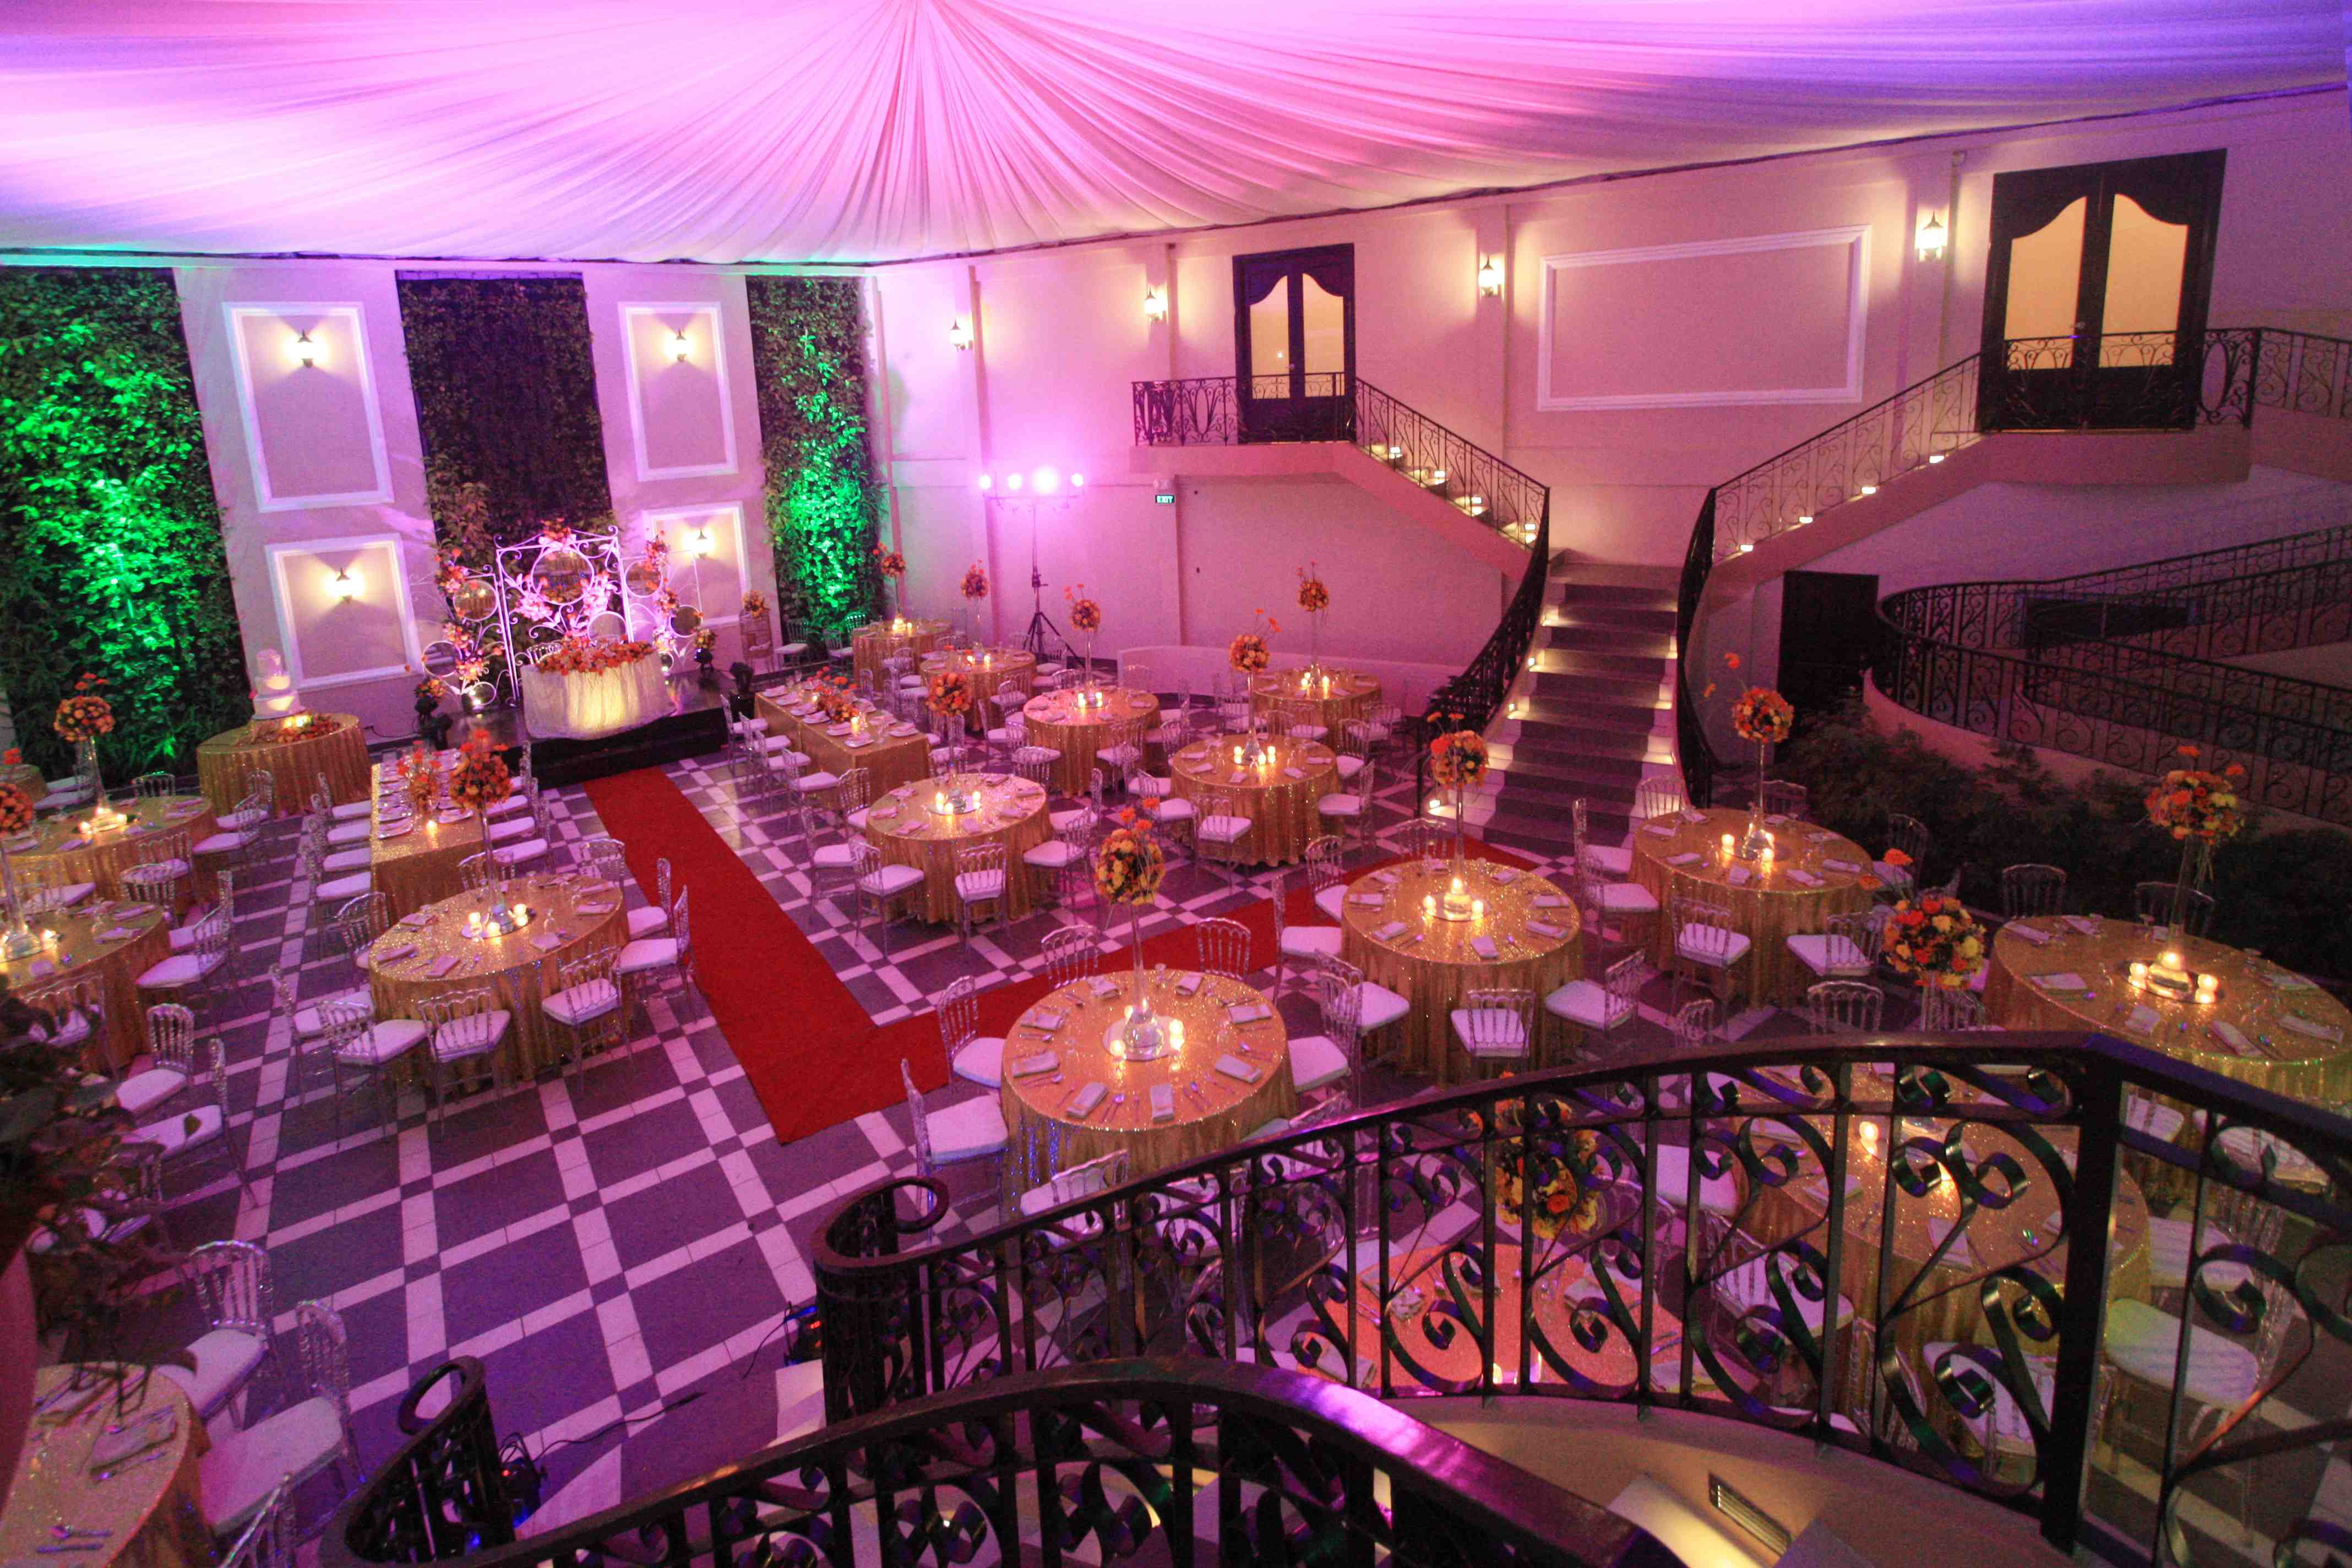 Majestic Venue for Events in Quezon City